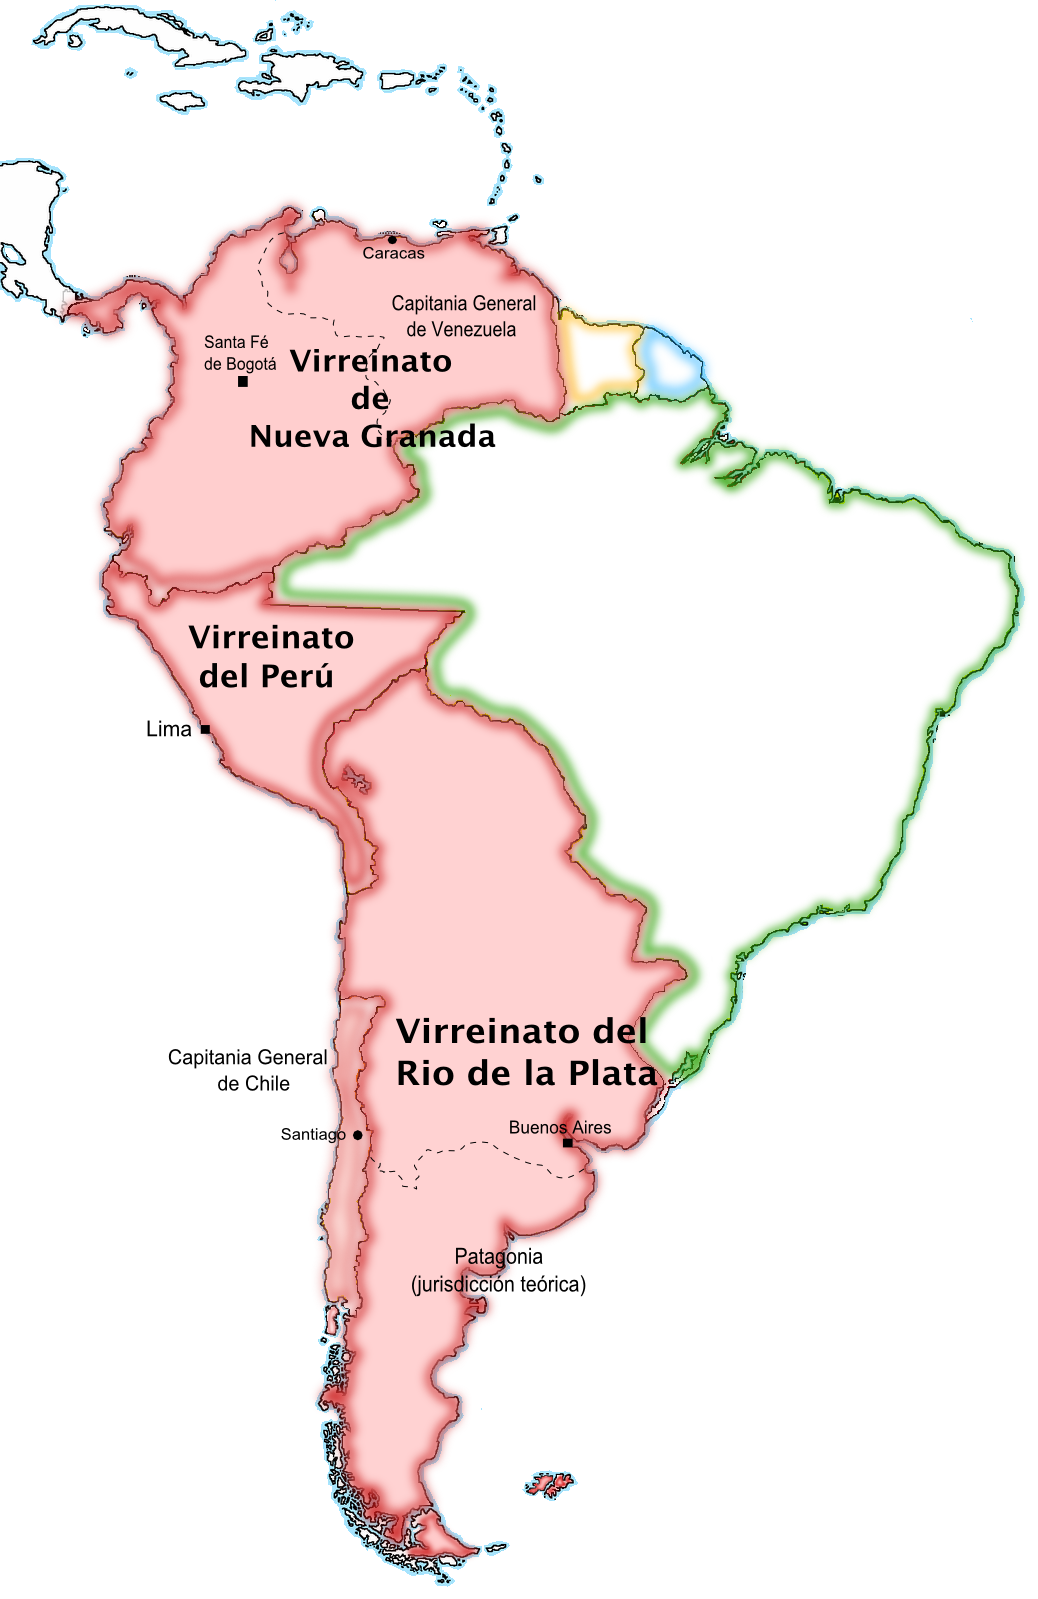 Colonial Spanish South America | 'Colonial encounter ... on antique map of south america, state map of south america, historical map of south america, colonial south carolina map, colonial map africa, religious map of south america, political map of south america, american map of south america, english map of south america, white map of south america, revolutionary map of south america, modern map of south america, columbia map of south america, provincial map of south america, industrial map of south america, spanish map of south america, ancient map of south america, natural map of south america, old world map of south america, country map of south america,